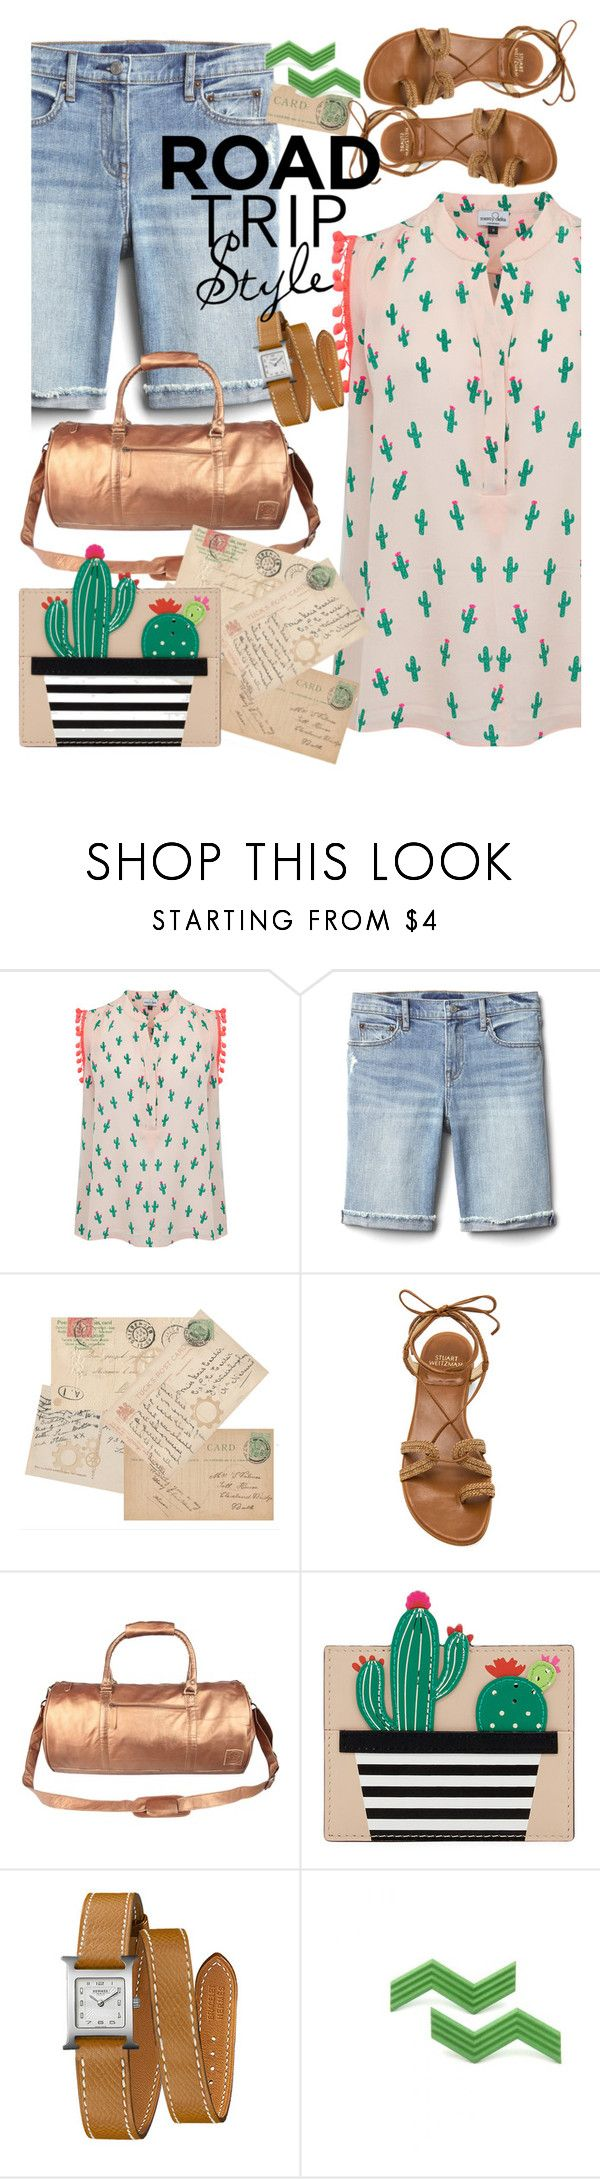 """""""Untitled #92"""" by caprice888 ❤ liked on Polyvore featuring Mercy Delta, Gap, Stuart Weitzman, Mahi, Kate Spade and Hermès"""